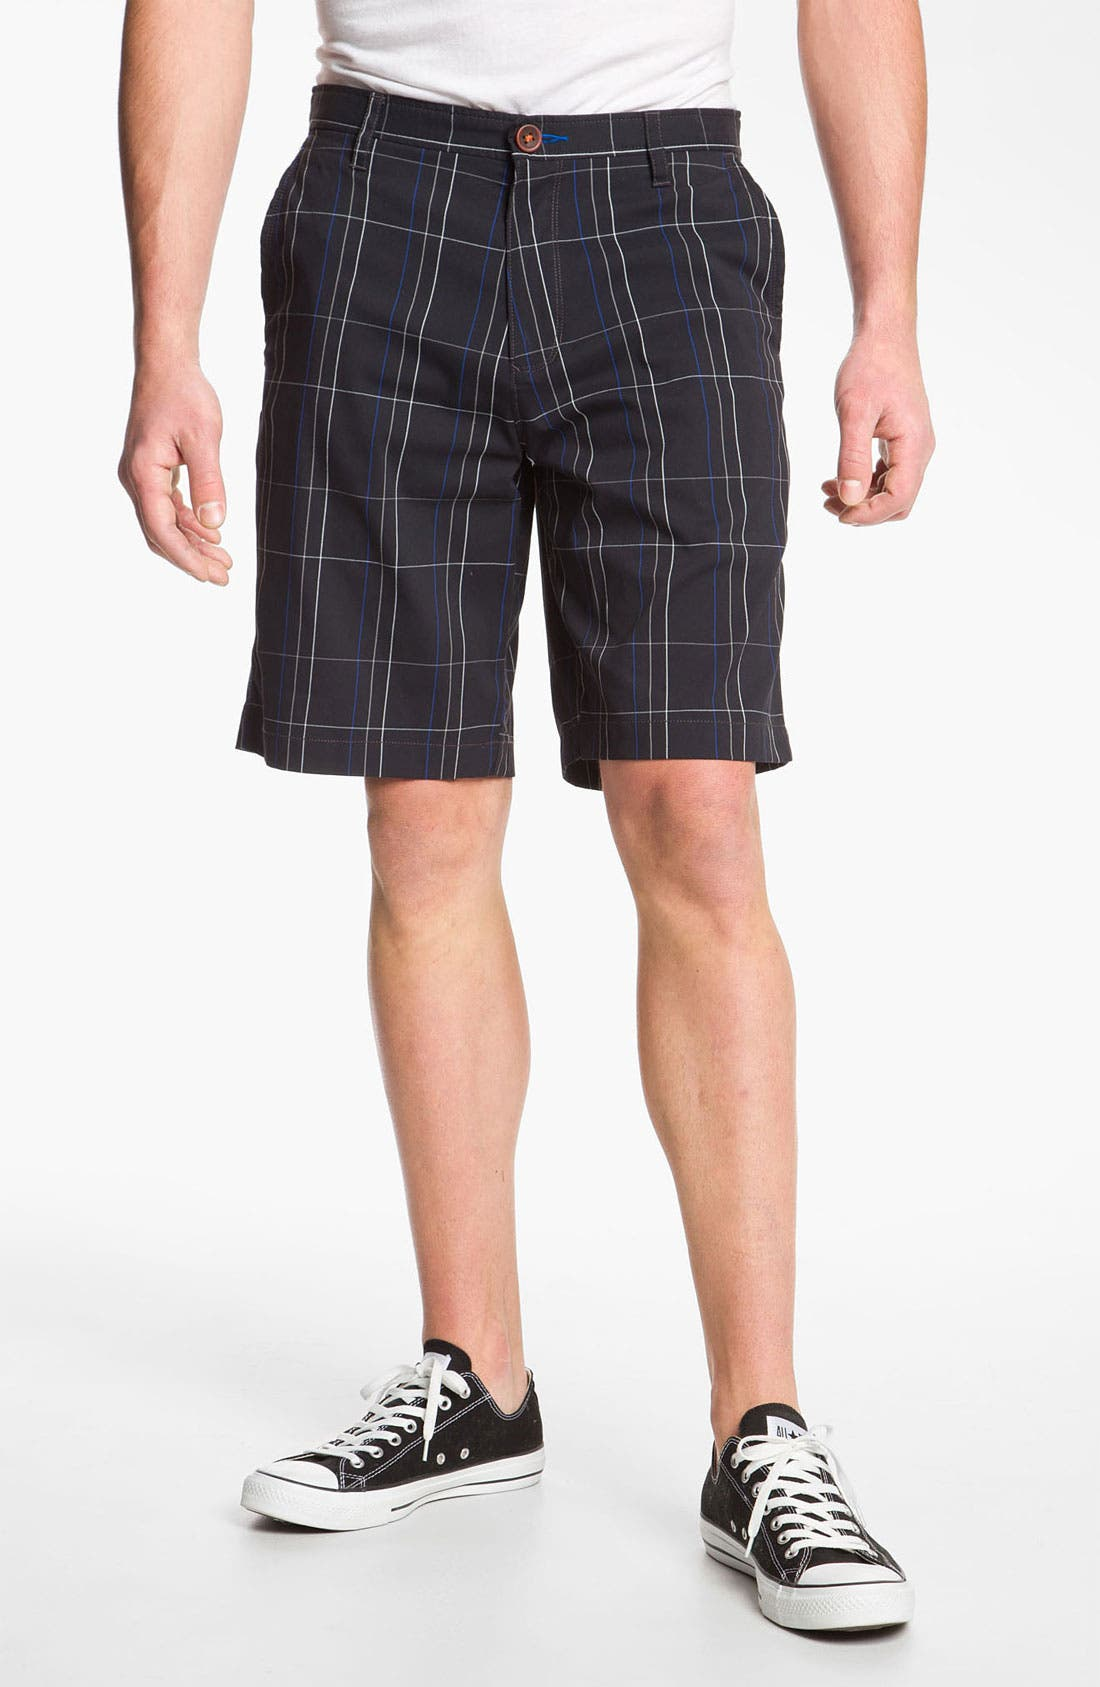 Alternate Image 1 Selected - Tommy Bahama 'Grid Life' Flat Front Shorts (Online Only)